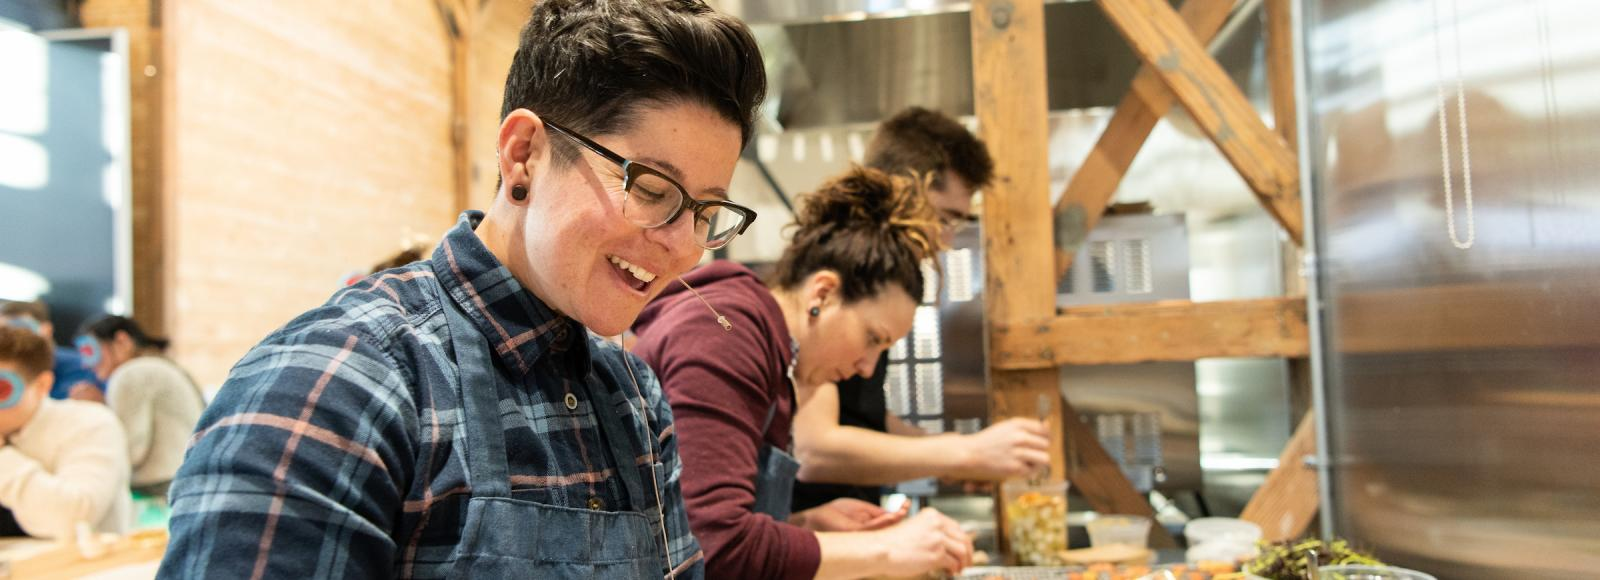 A smiling woman in a plaid shirt and blue apron prepares small plates of food.